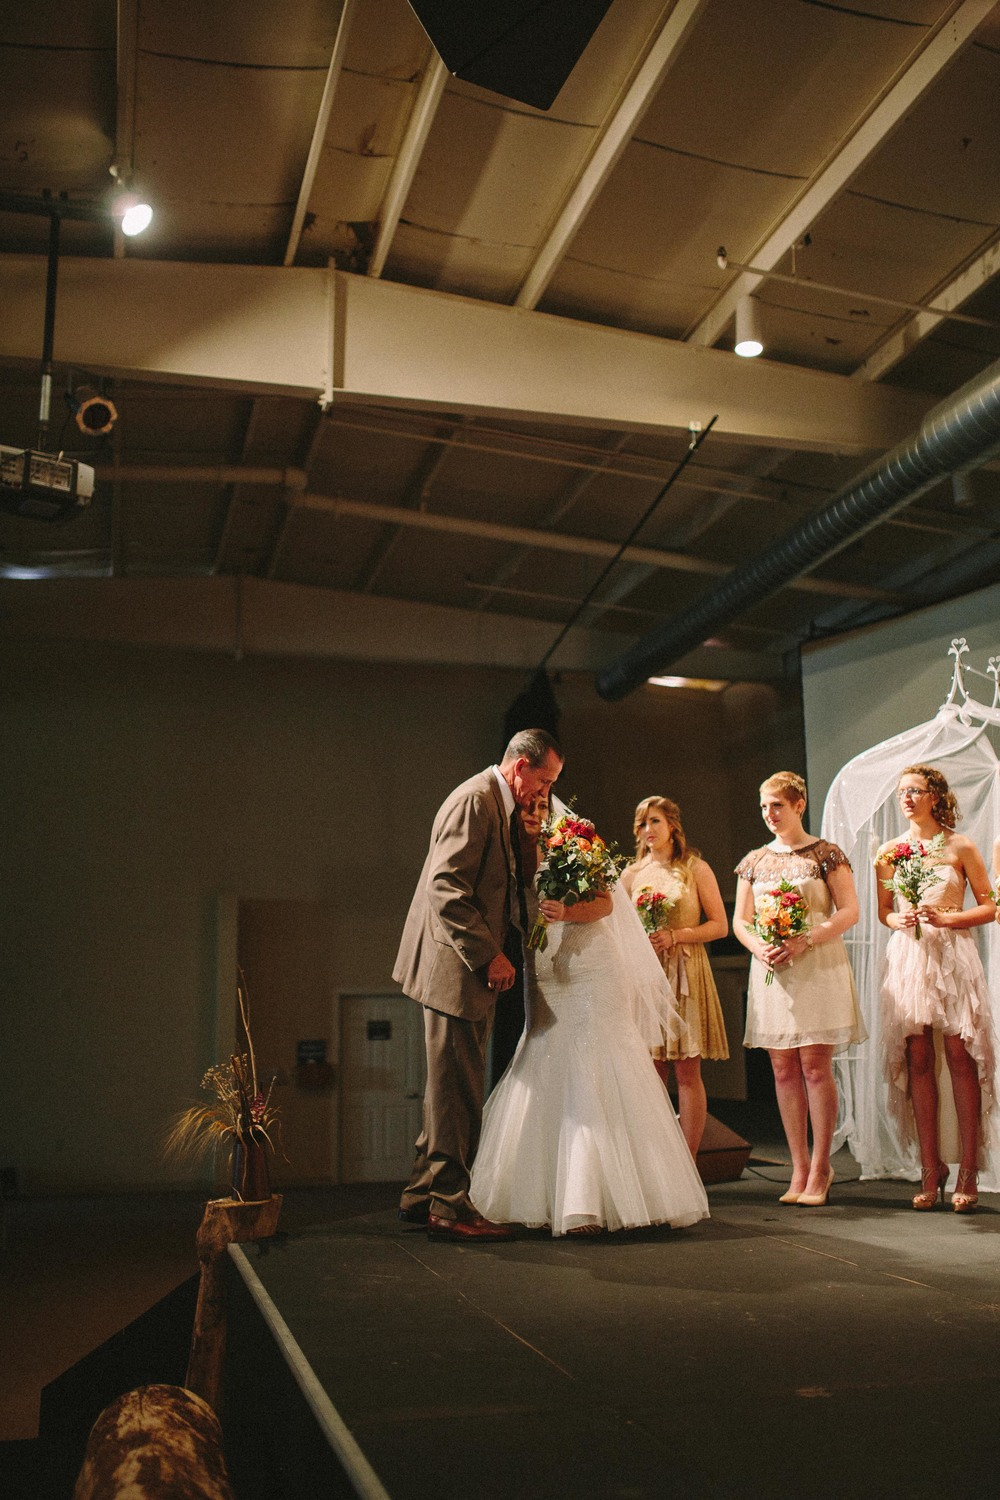 andrew and meagan wedding-38.jpg